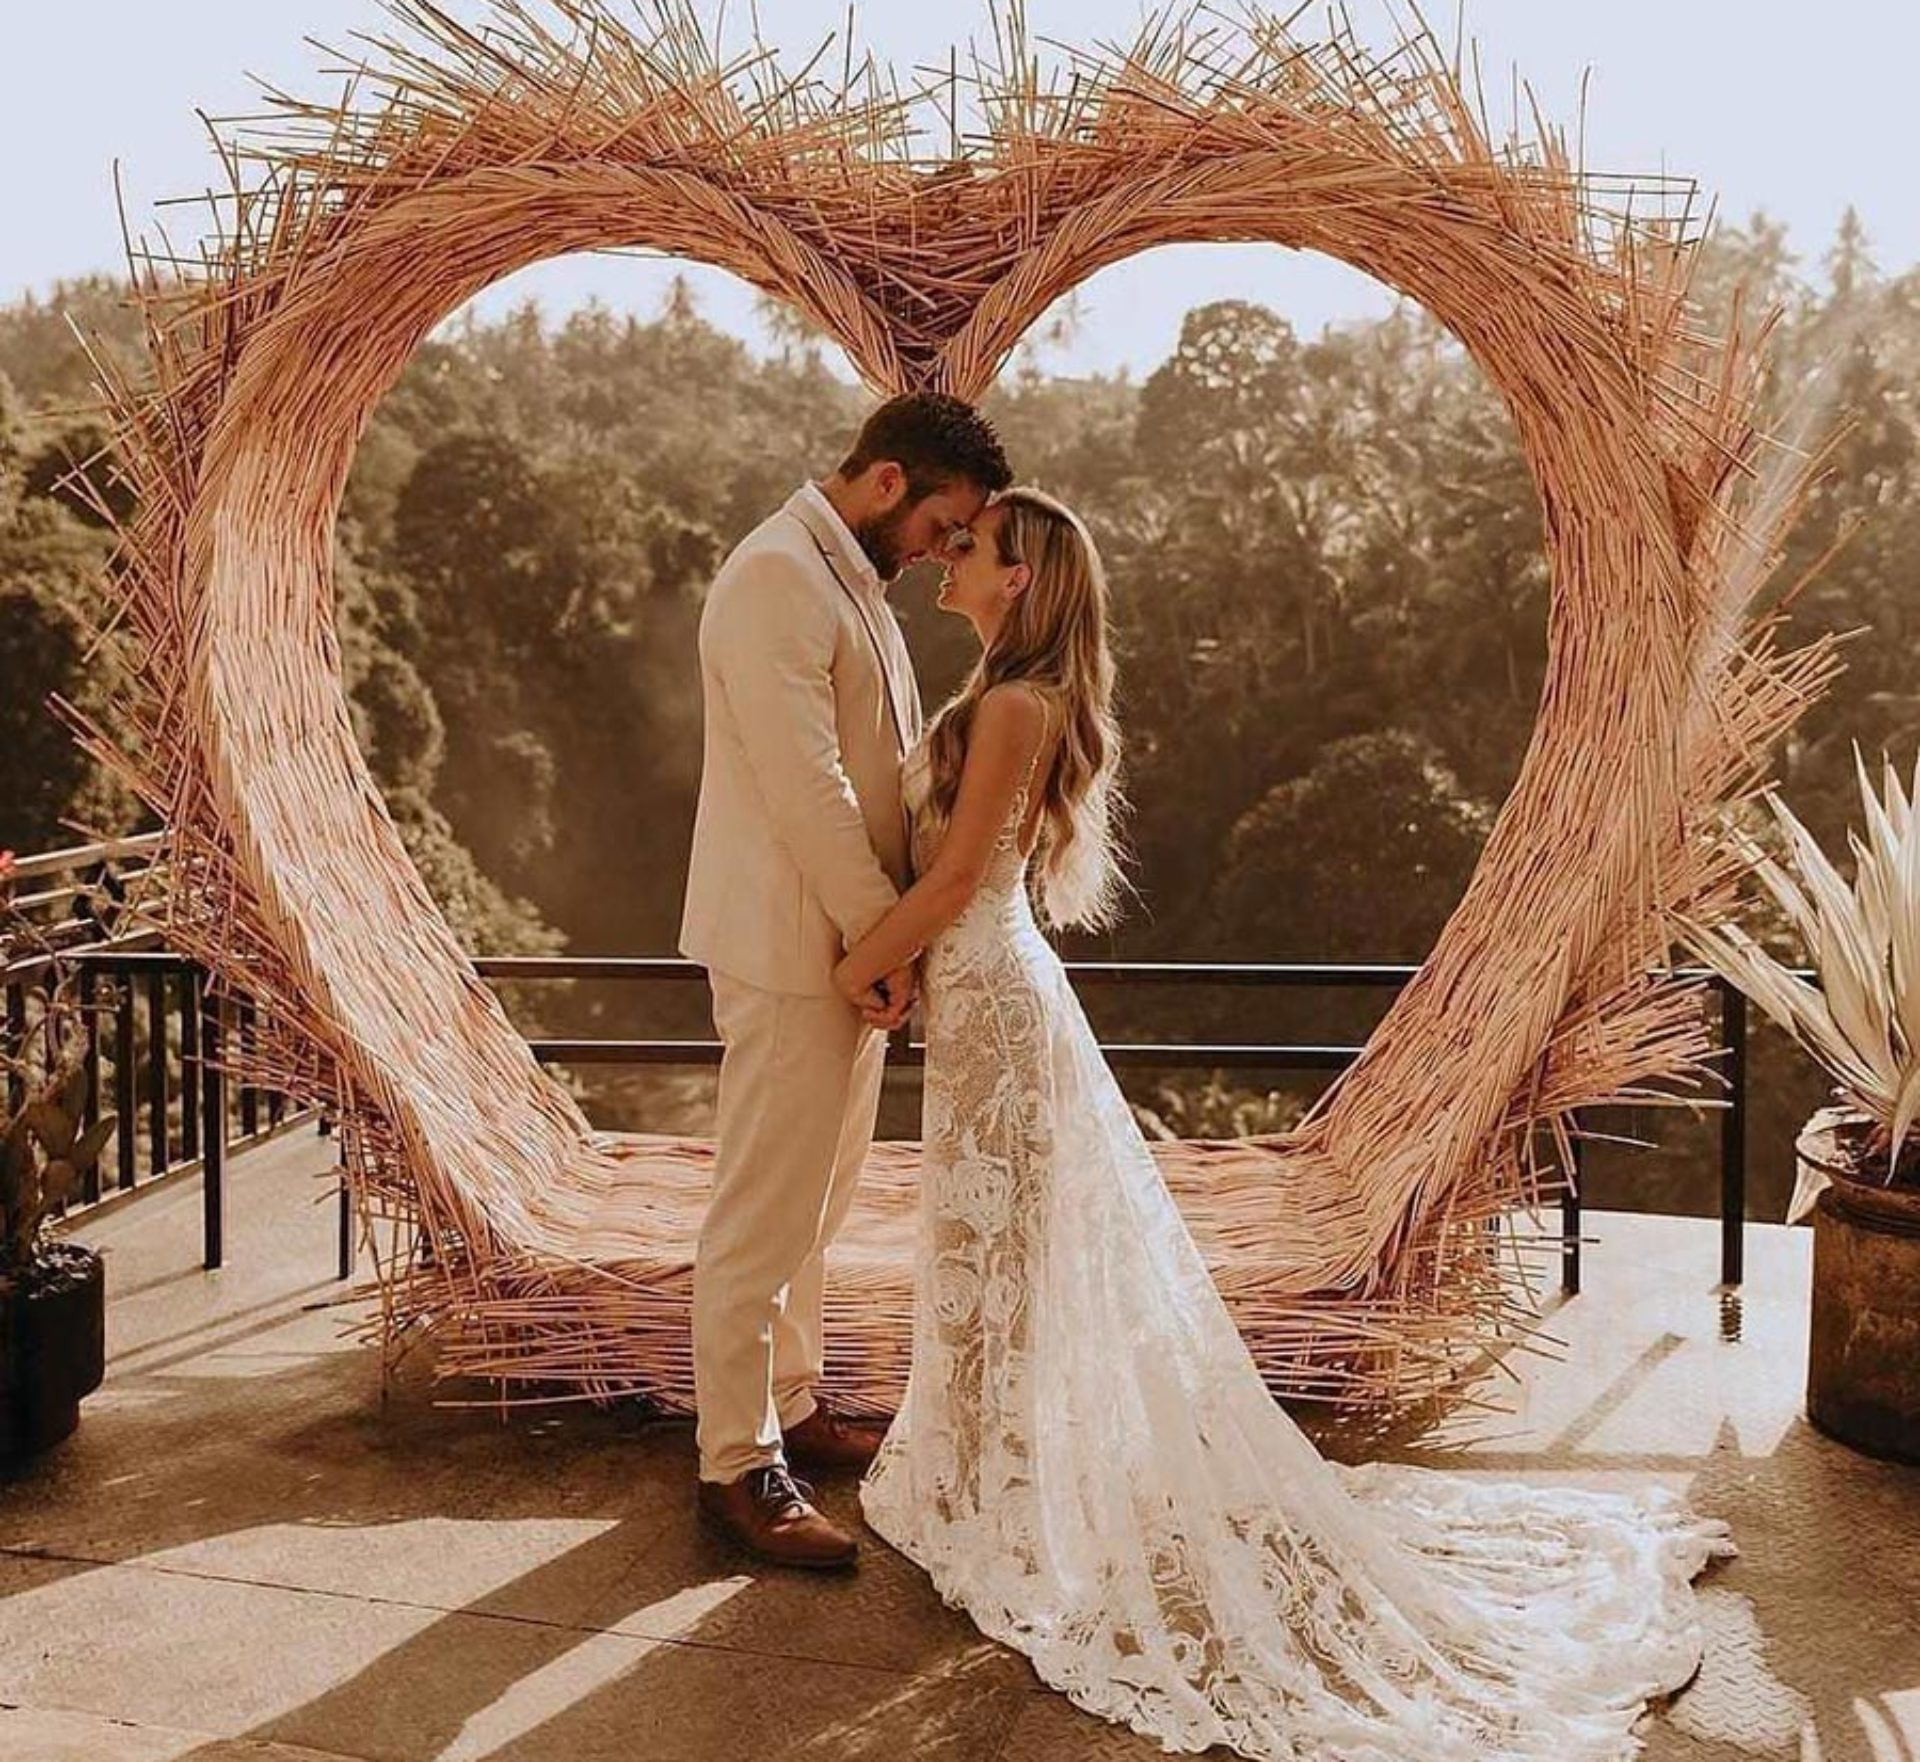 The most magical day - the wedding